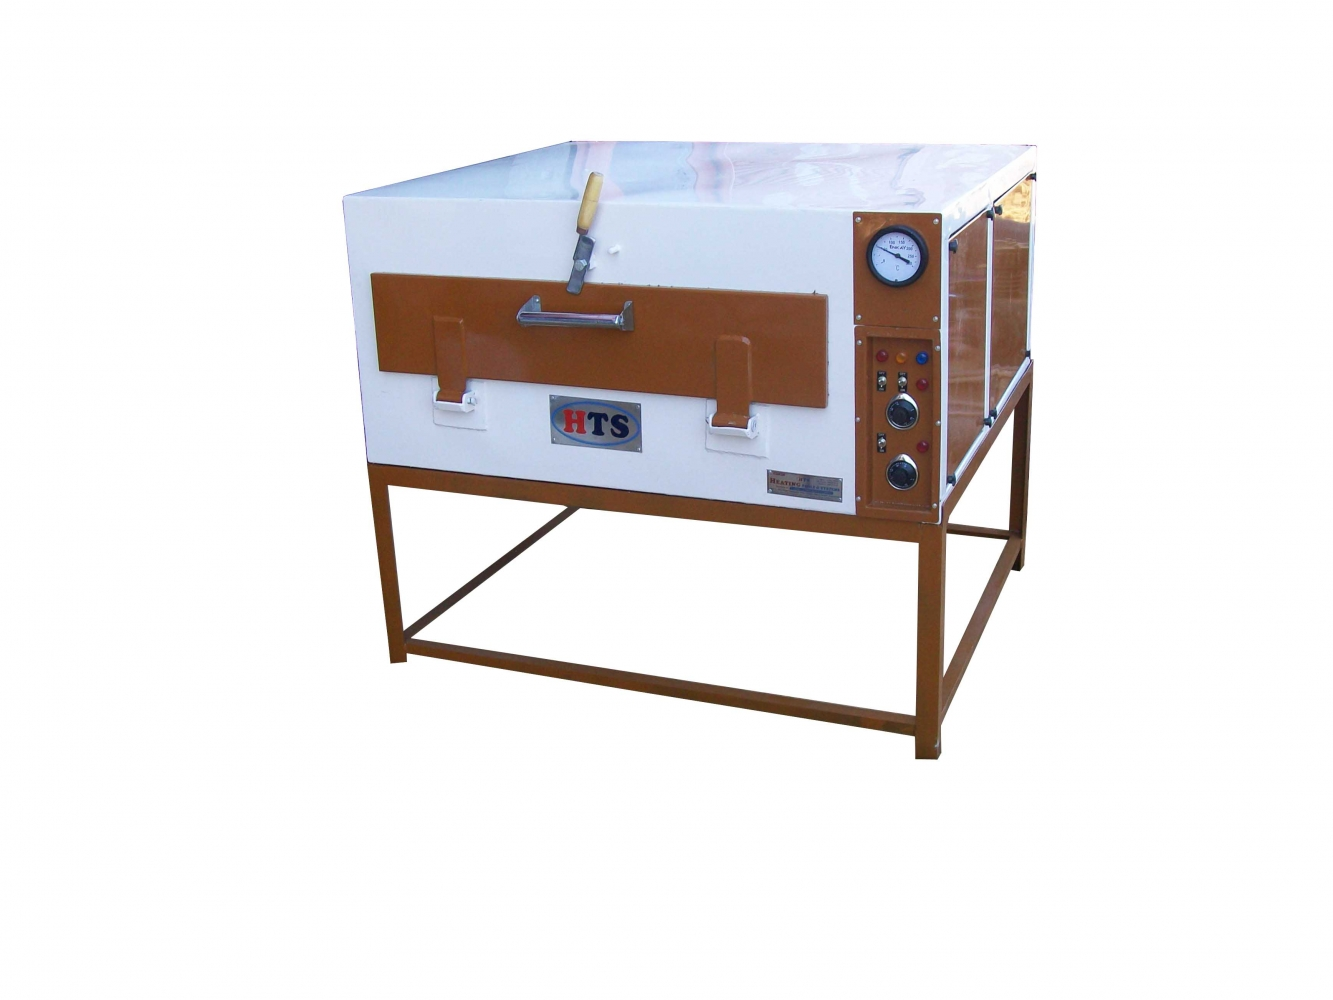 Electric Bakery Oven, Electric Deck Oven, Deck Ovens, Electric Bakery Ovens India, Bakery Ovens India, Bakiery Machines India, Electric Baking Ovens India, Bakers Equipments